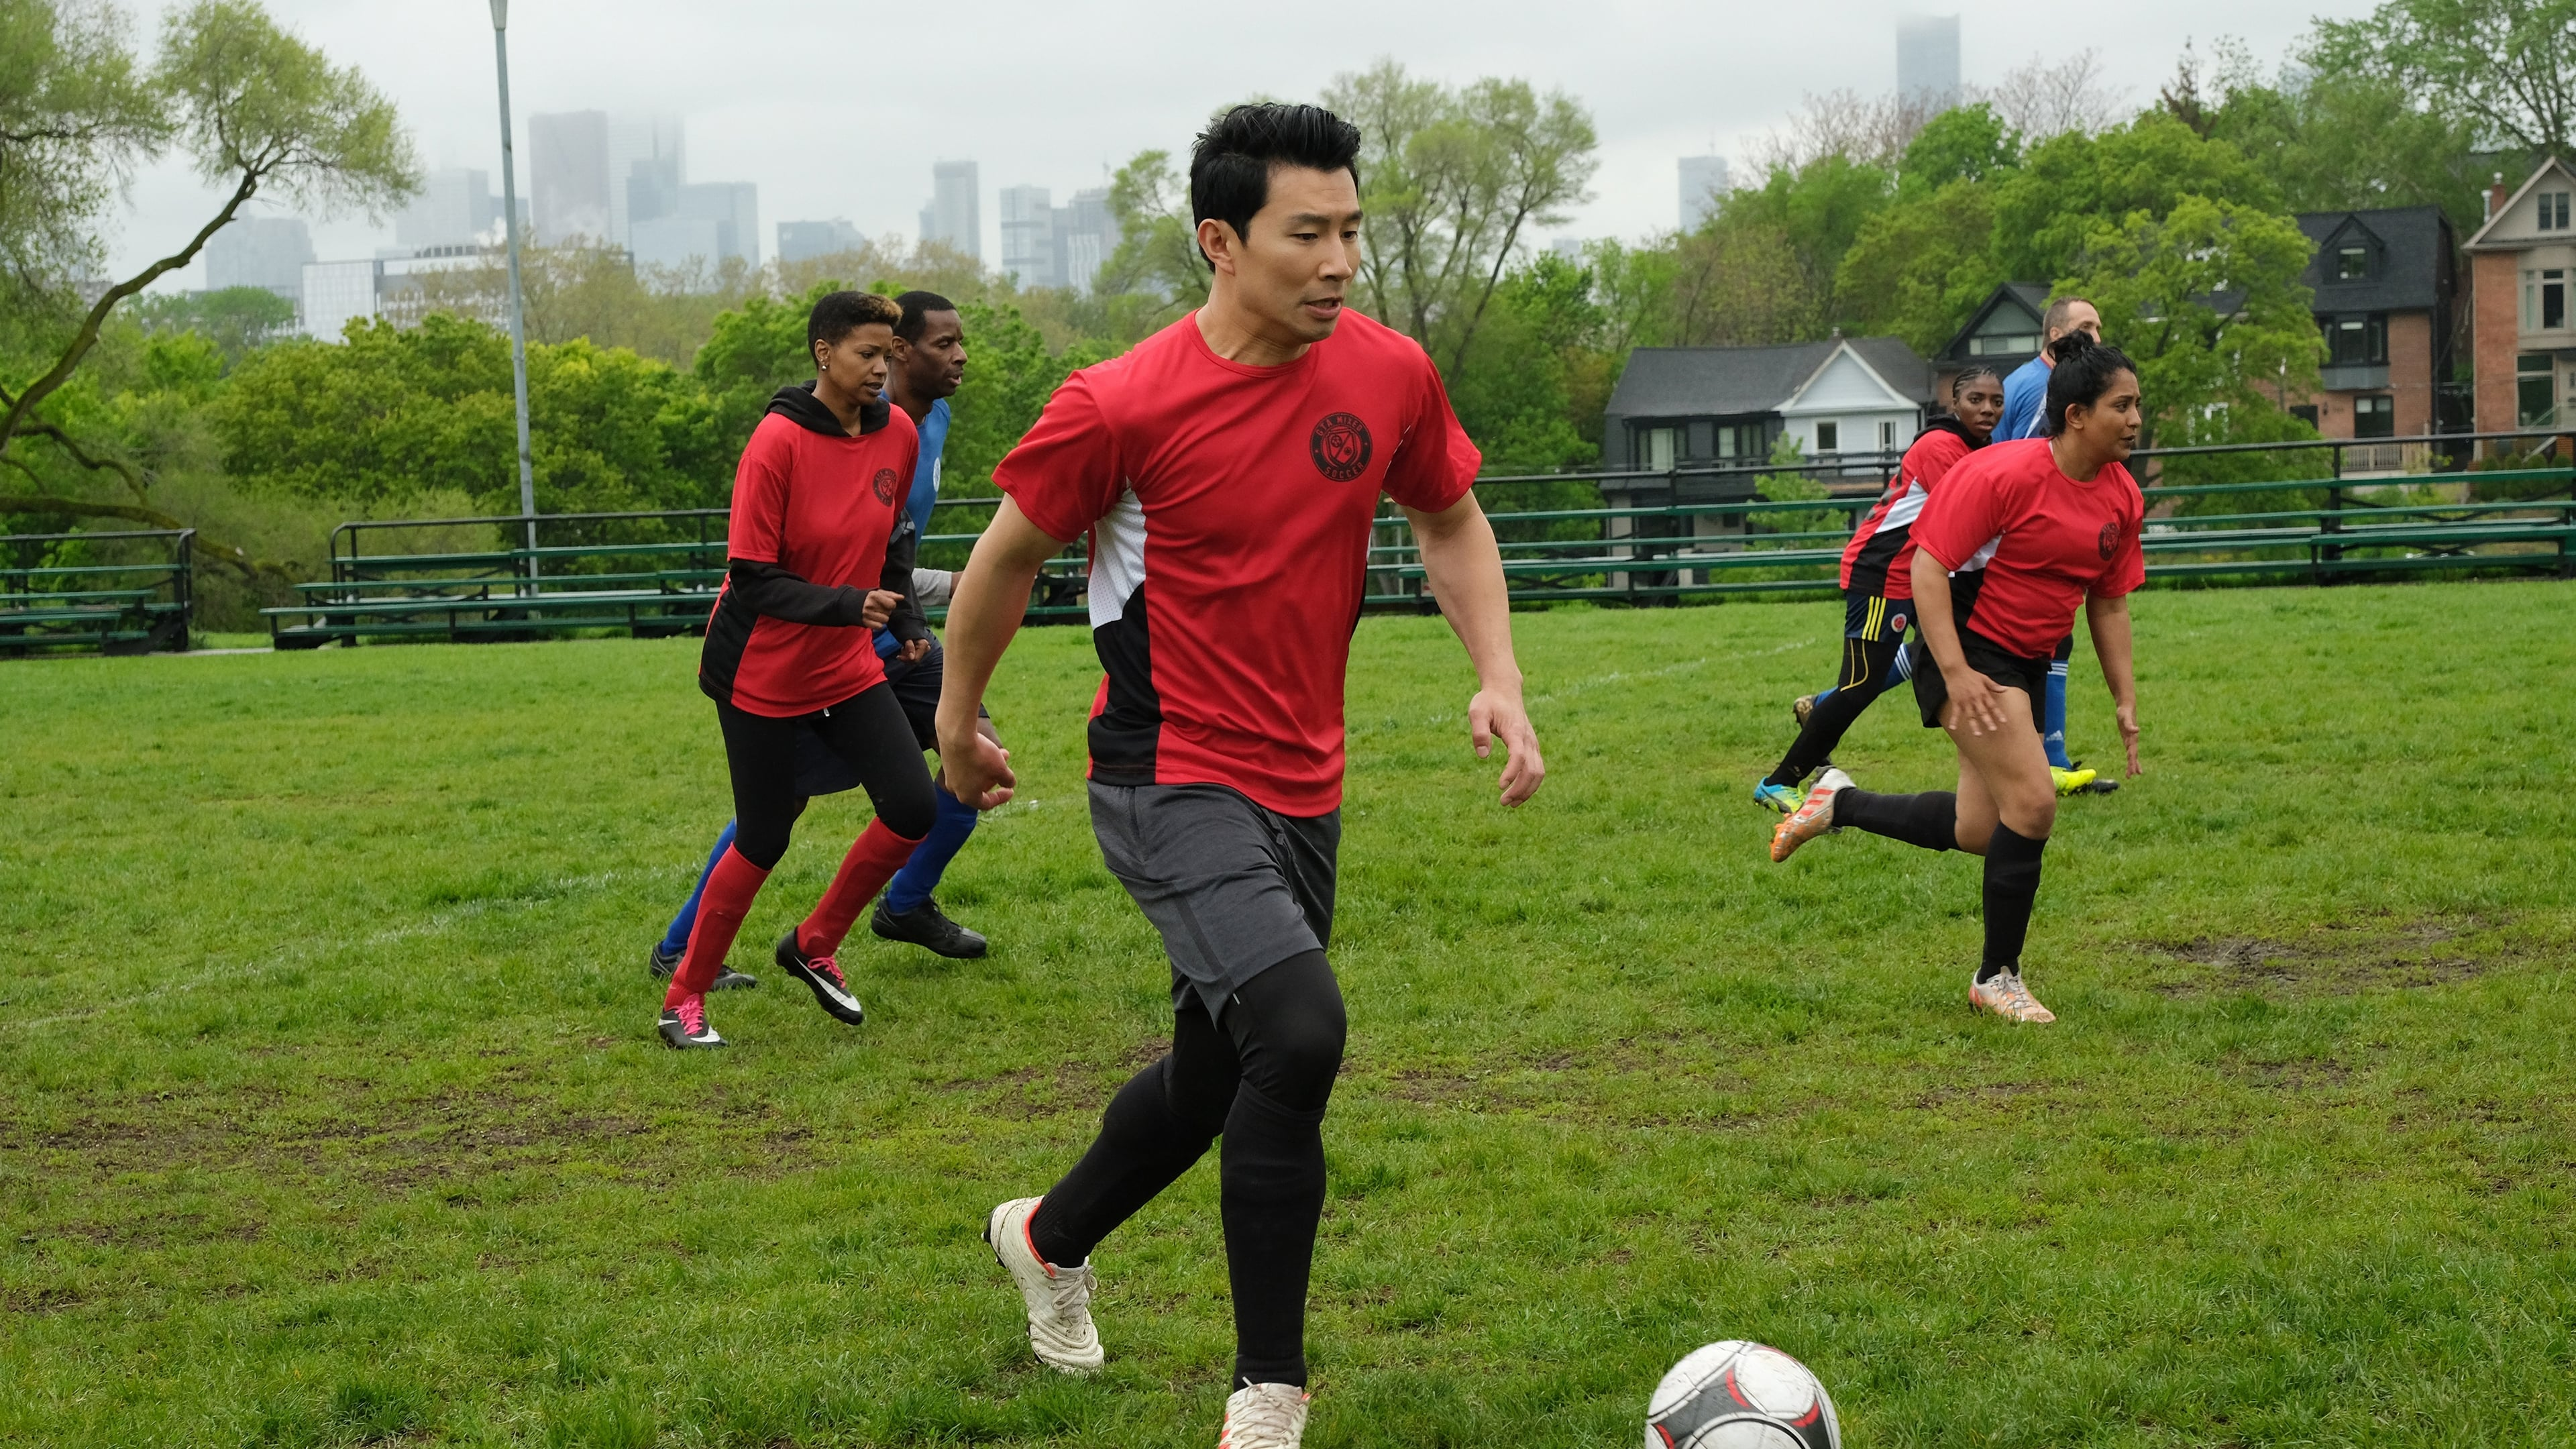 Kim's Convenience - Season 4 Episode 6 : Soccer Dad